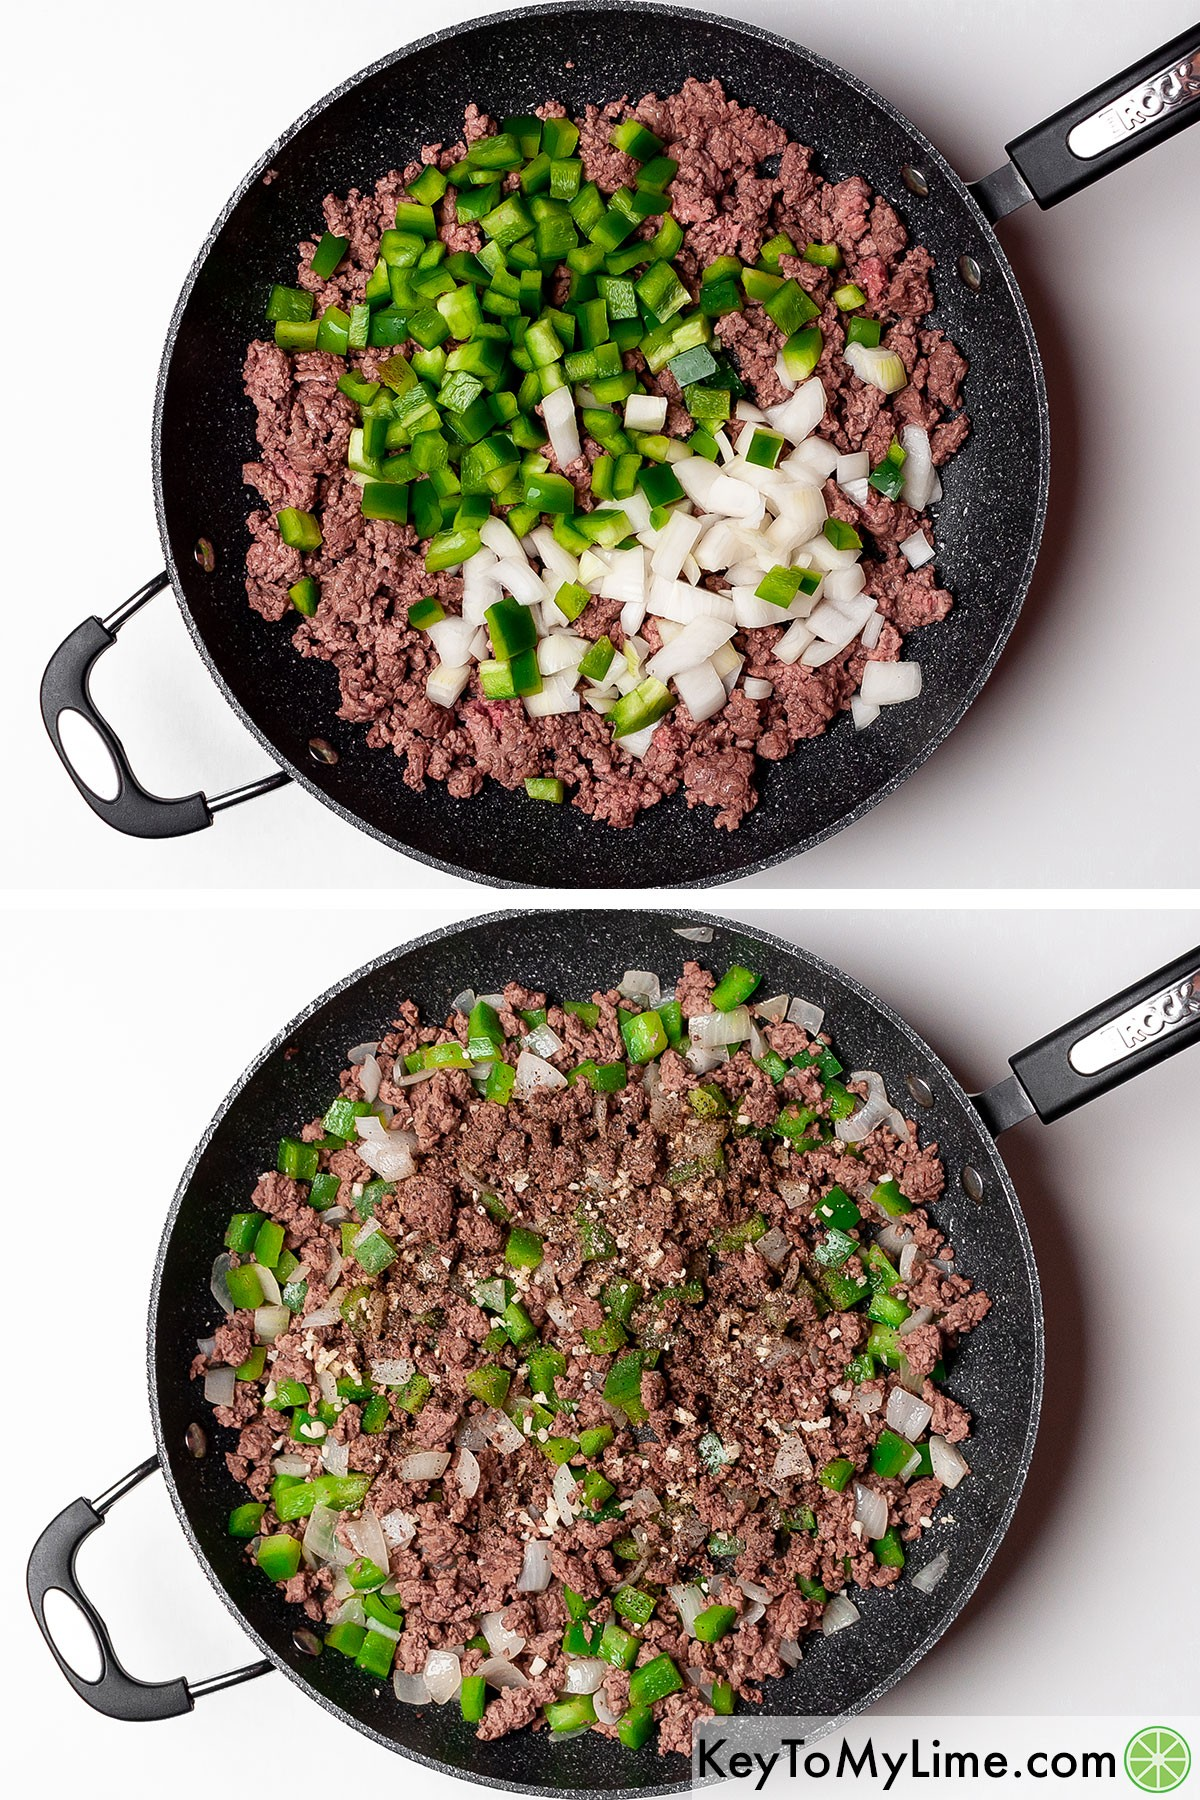 Sauteing ground beef with onion and green bell peppers.